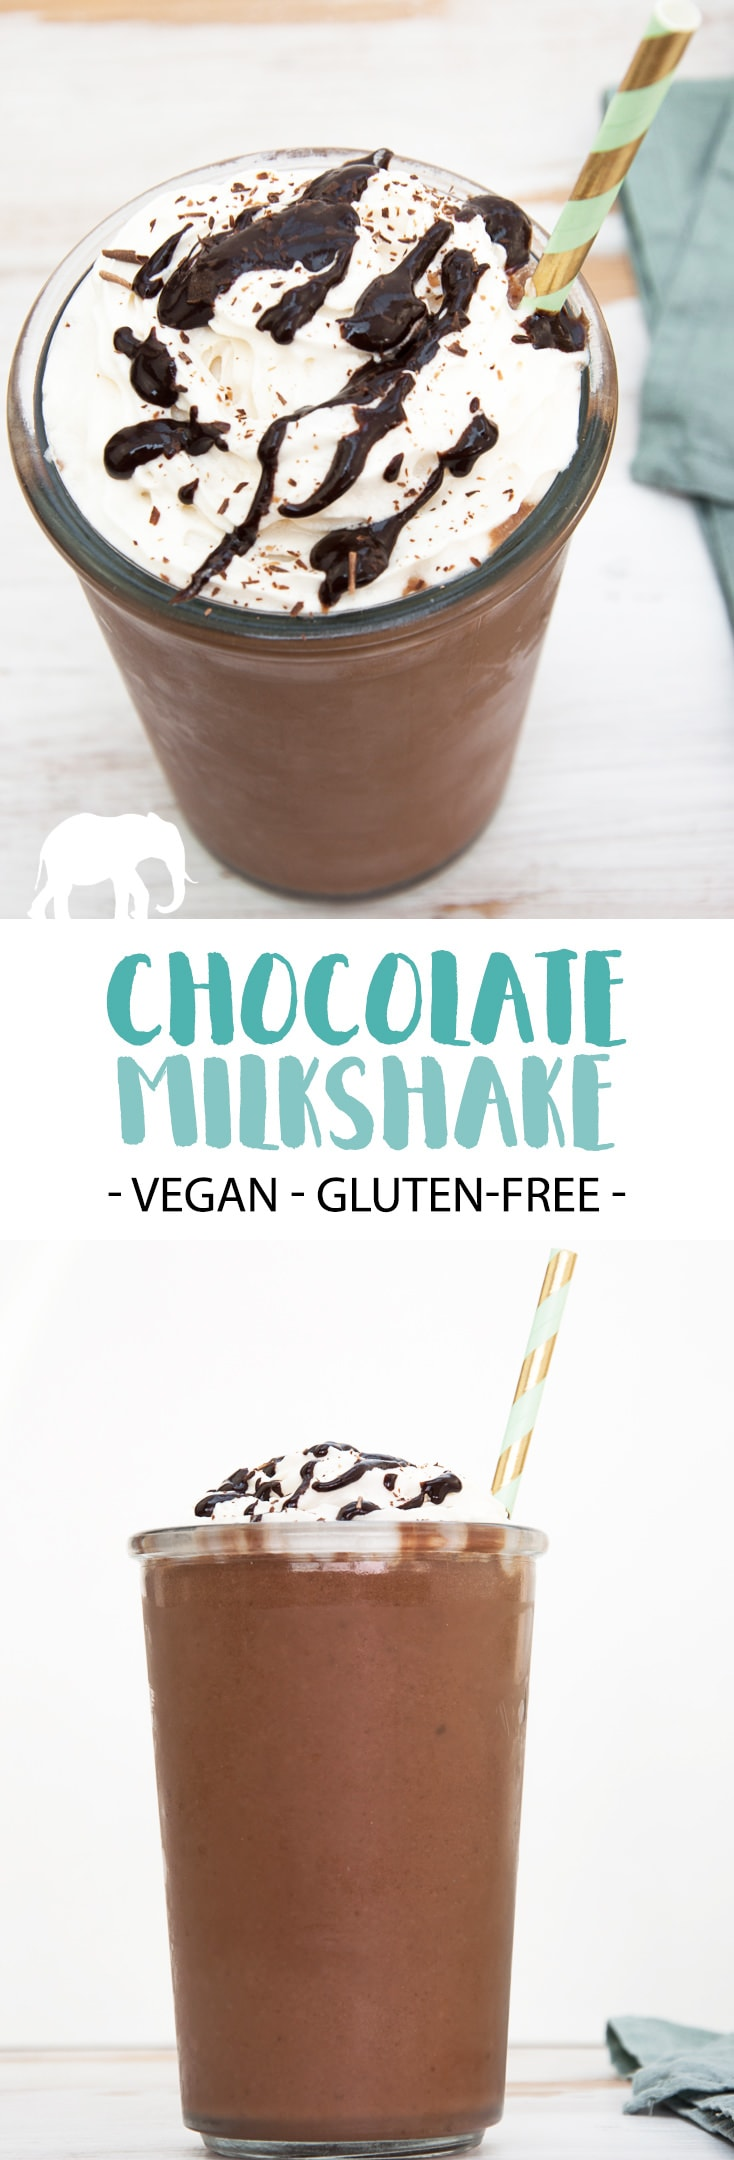 Chocolate Milkshake - vegan and gluten-free #chocolate #milkshake #vegan #plantbased #dairyfree #sweet #dessert #summer #glutenfree | ElephantasticVegan.com